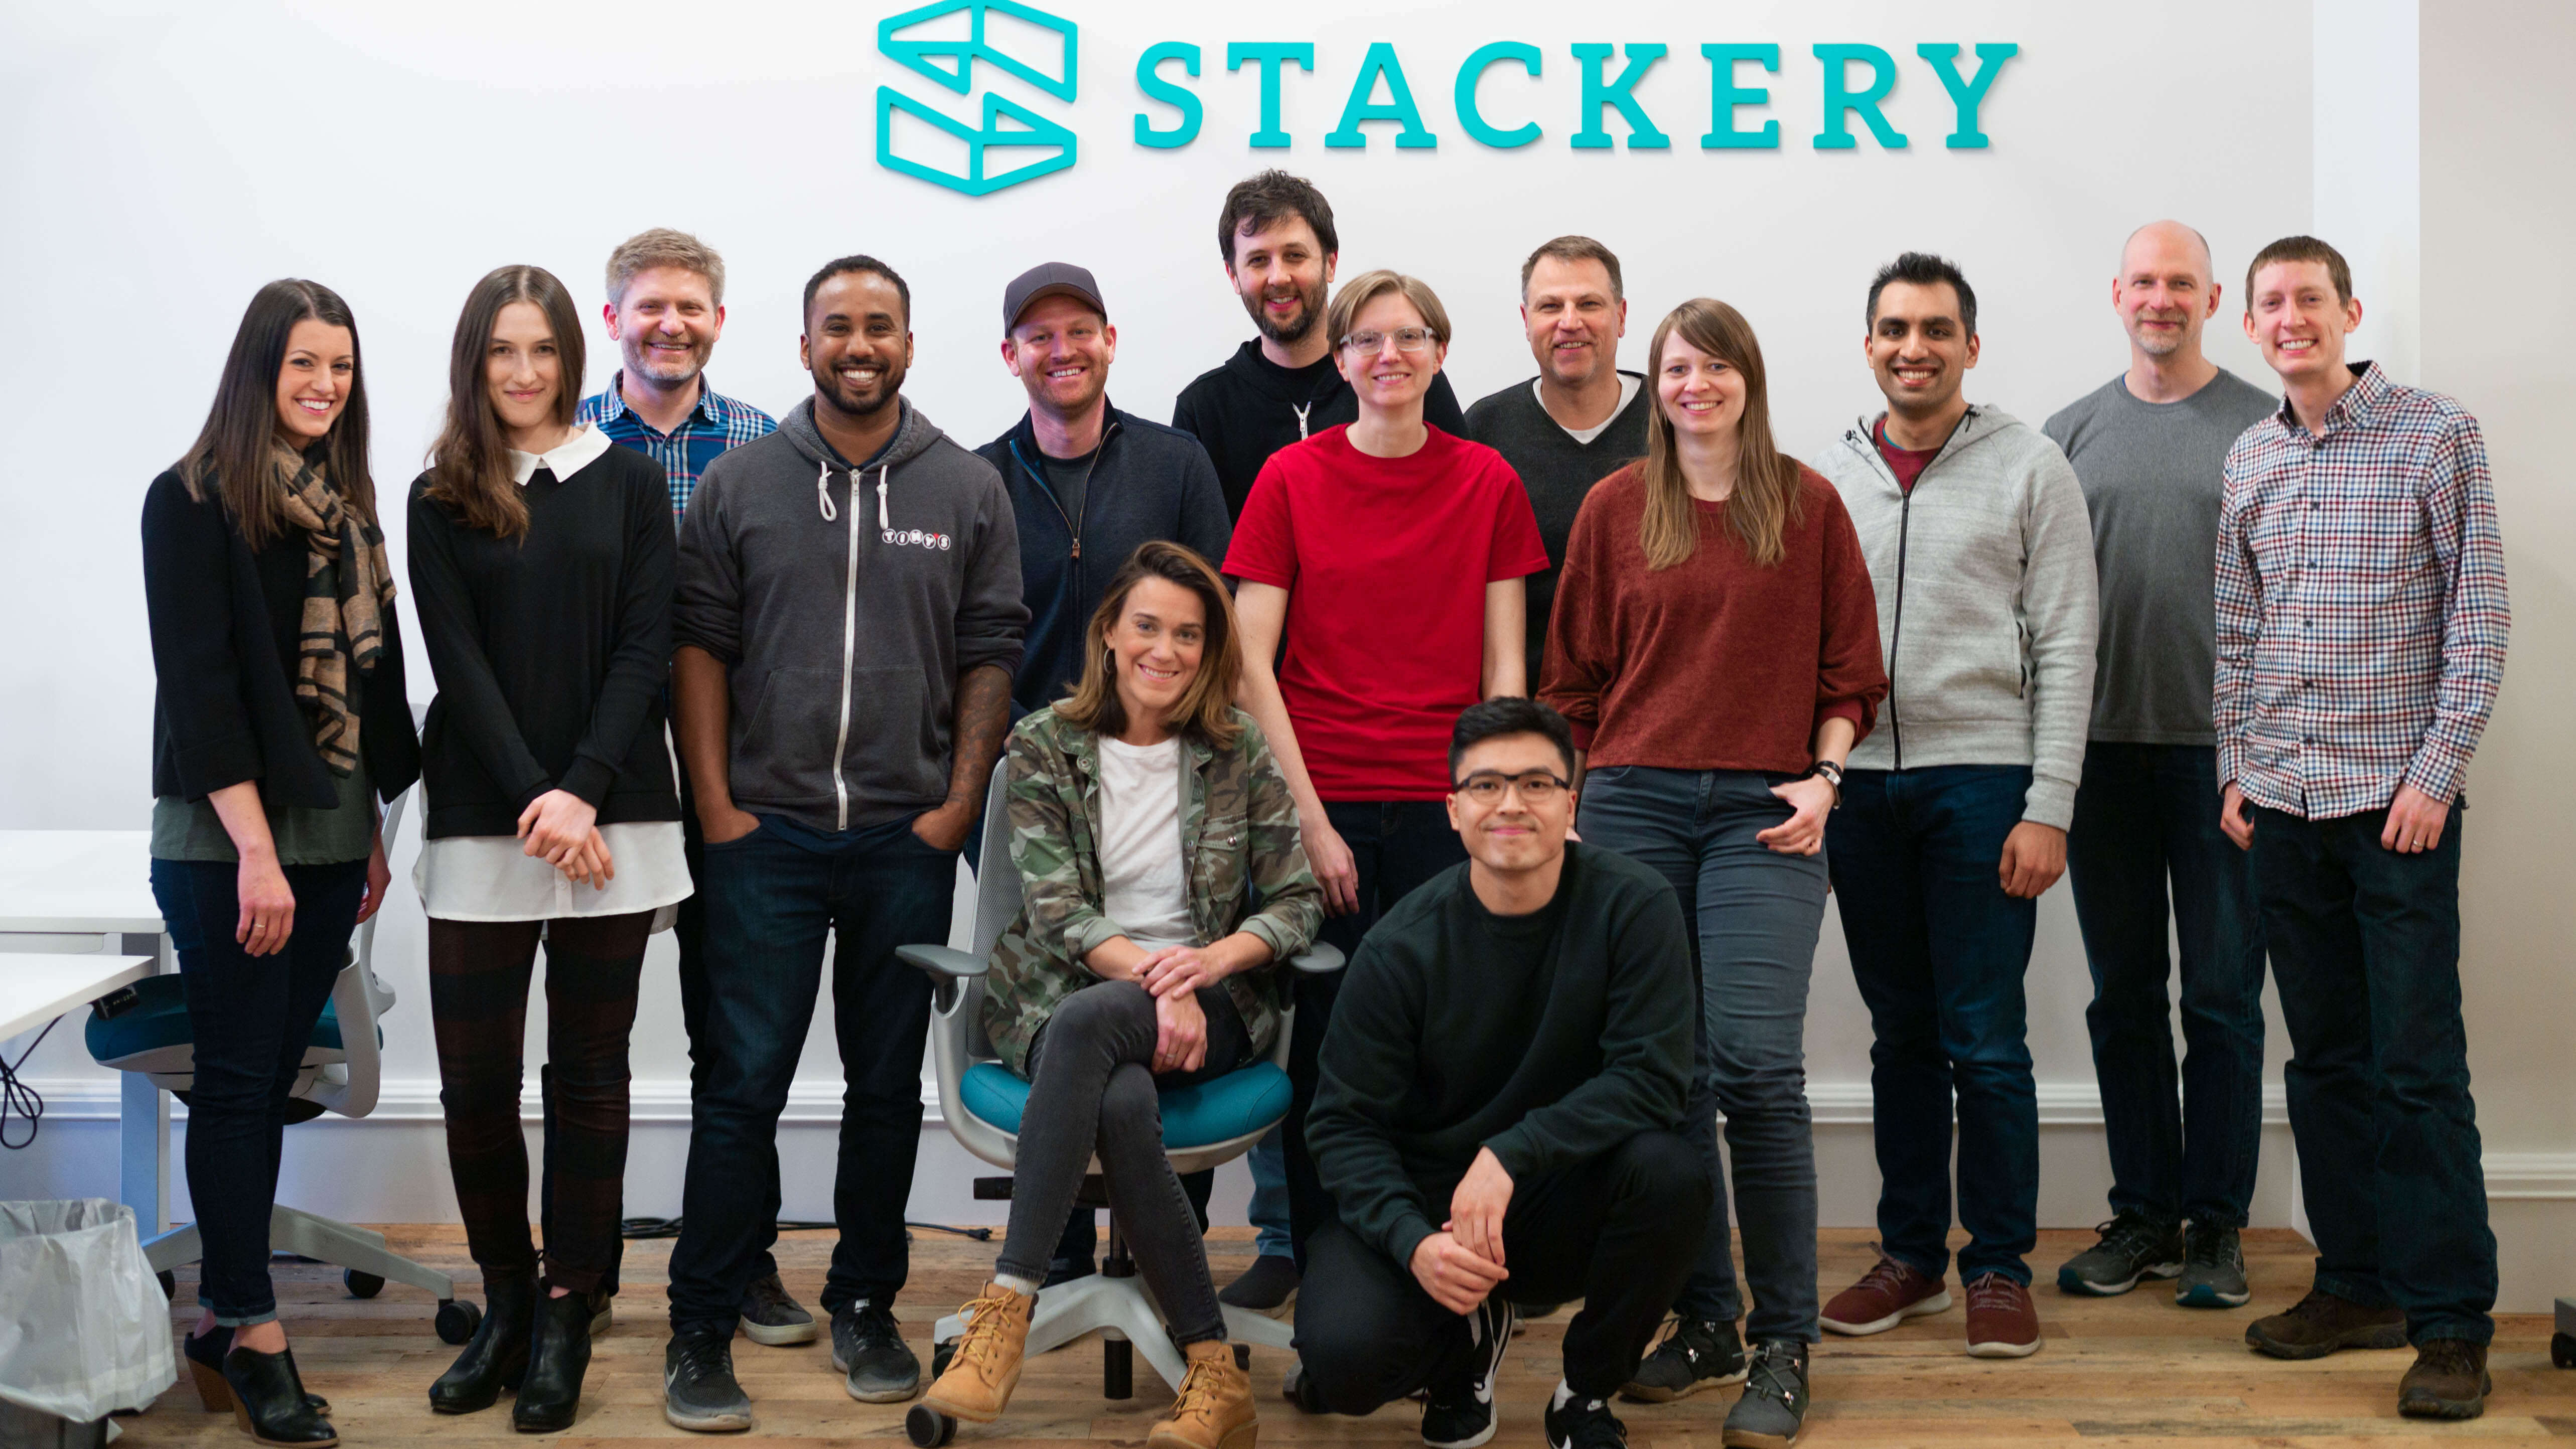 The Stackery Team